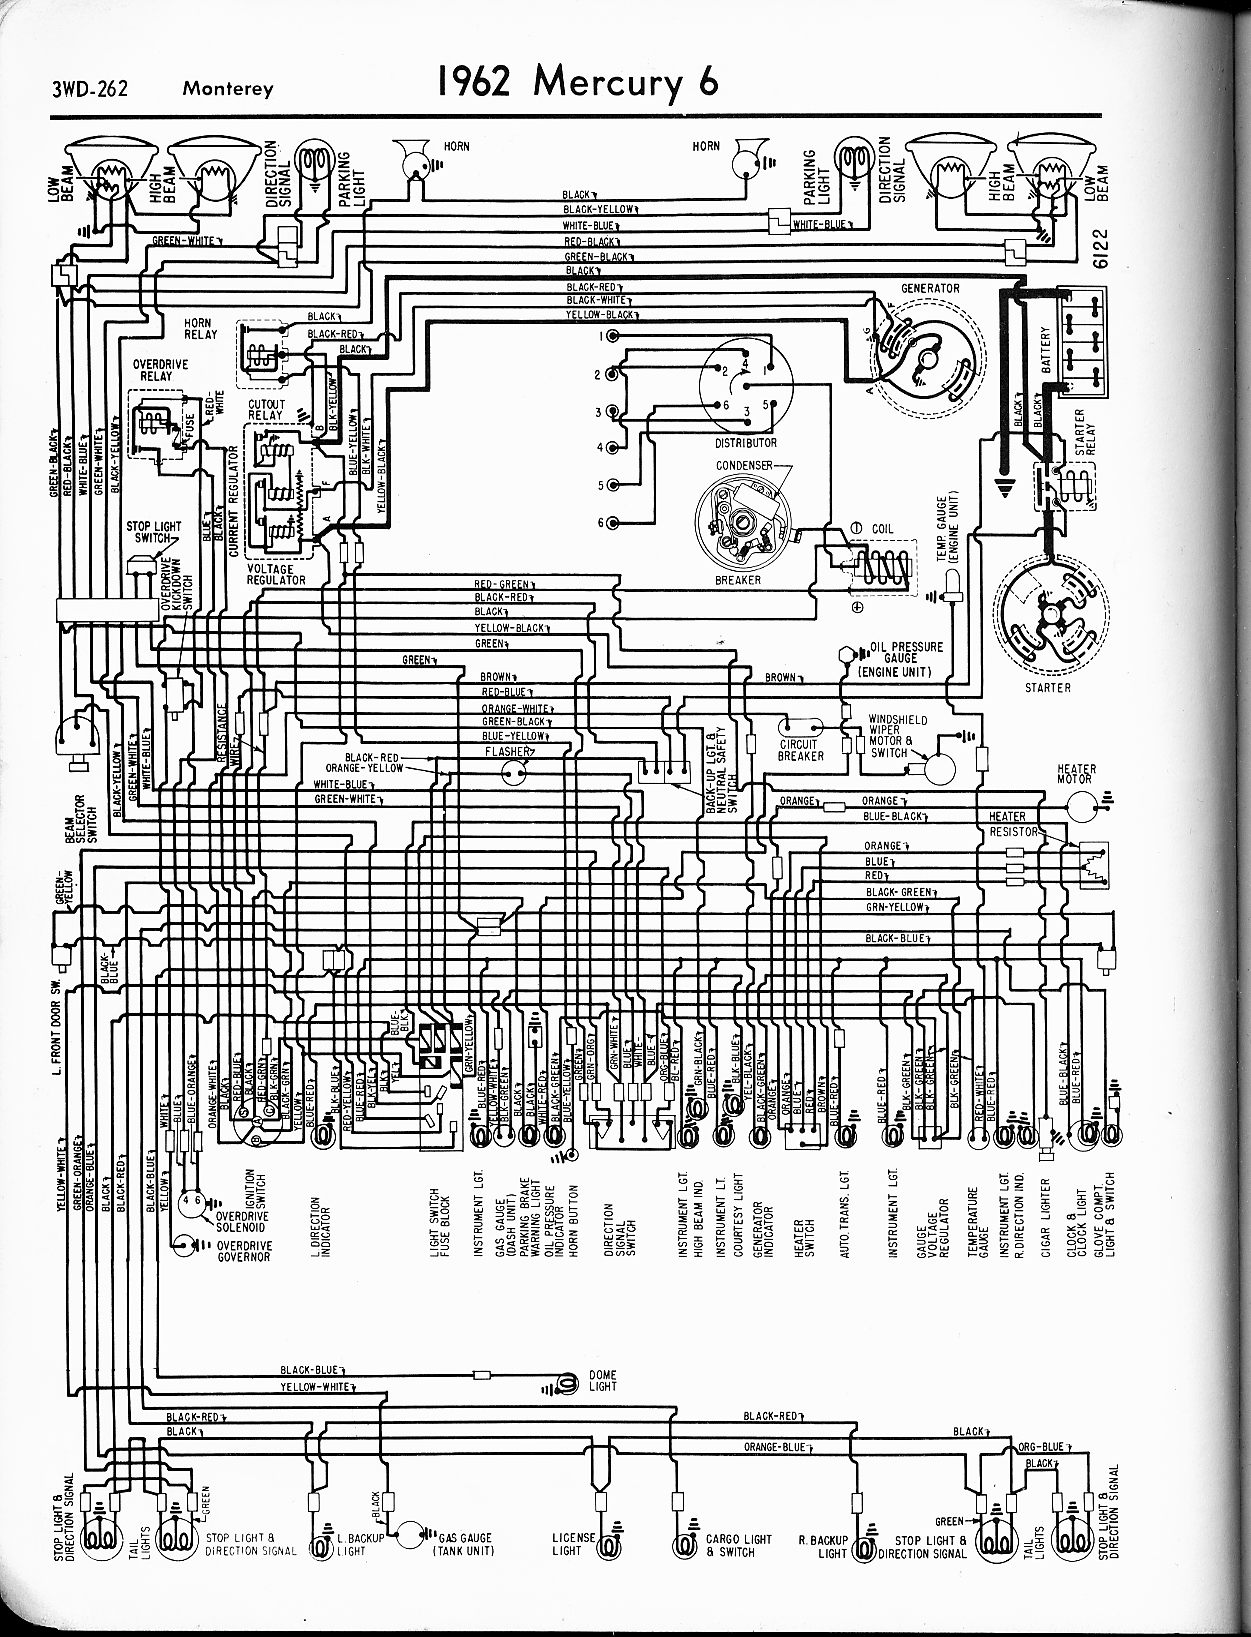 MWire5765 262 mercury wiring diagrams the old car manual project  at gsmx.co